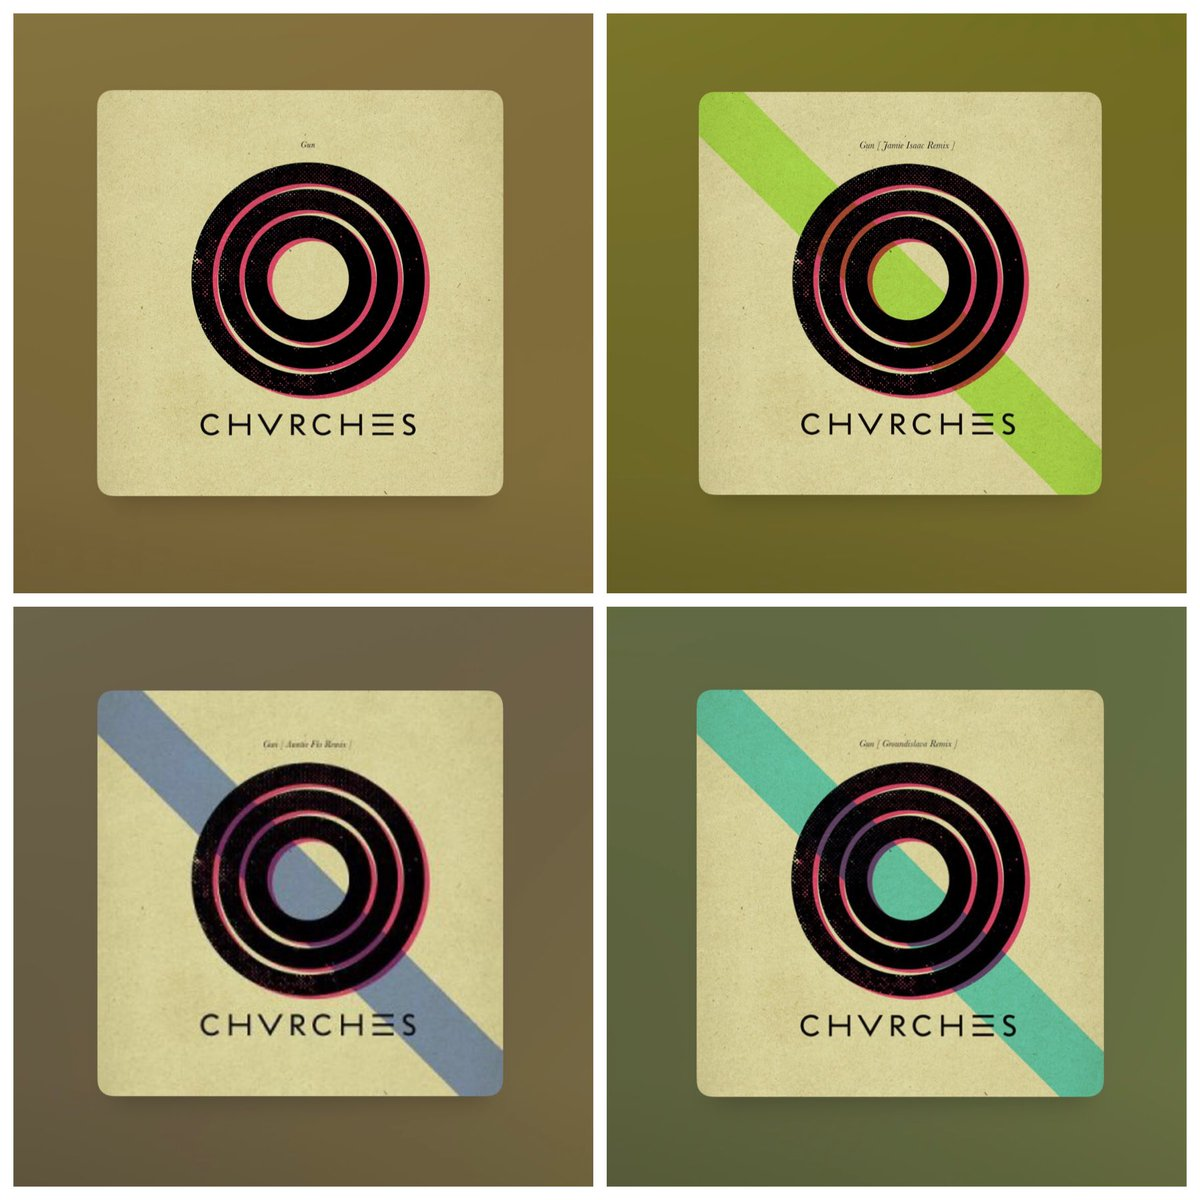 #NewProfilePic   In honor of last November's tribute with #Apple's new #iOS14 ambient backgrounds, our profile pic is changing each day through Jan 20th, to reflect different #chvrches #album #art #color schemes!! 🙌🏼💿🎨🙌🏼  💙💜🖤🤍💗❤️🧡💛💚💙  Today's Color: GREEN